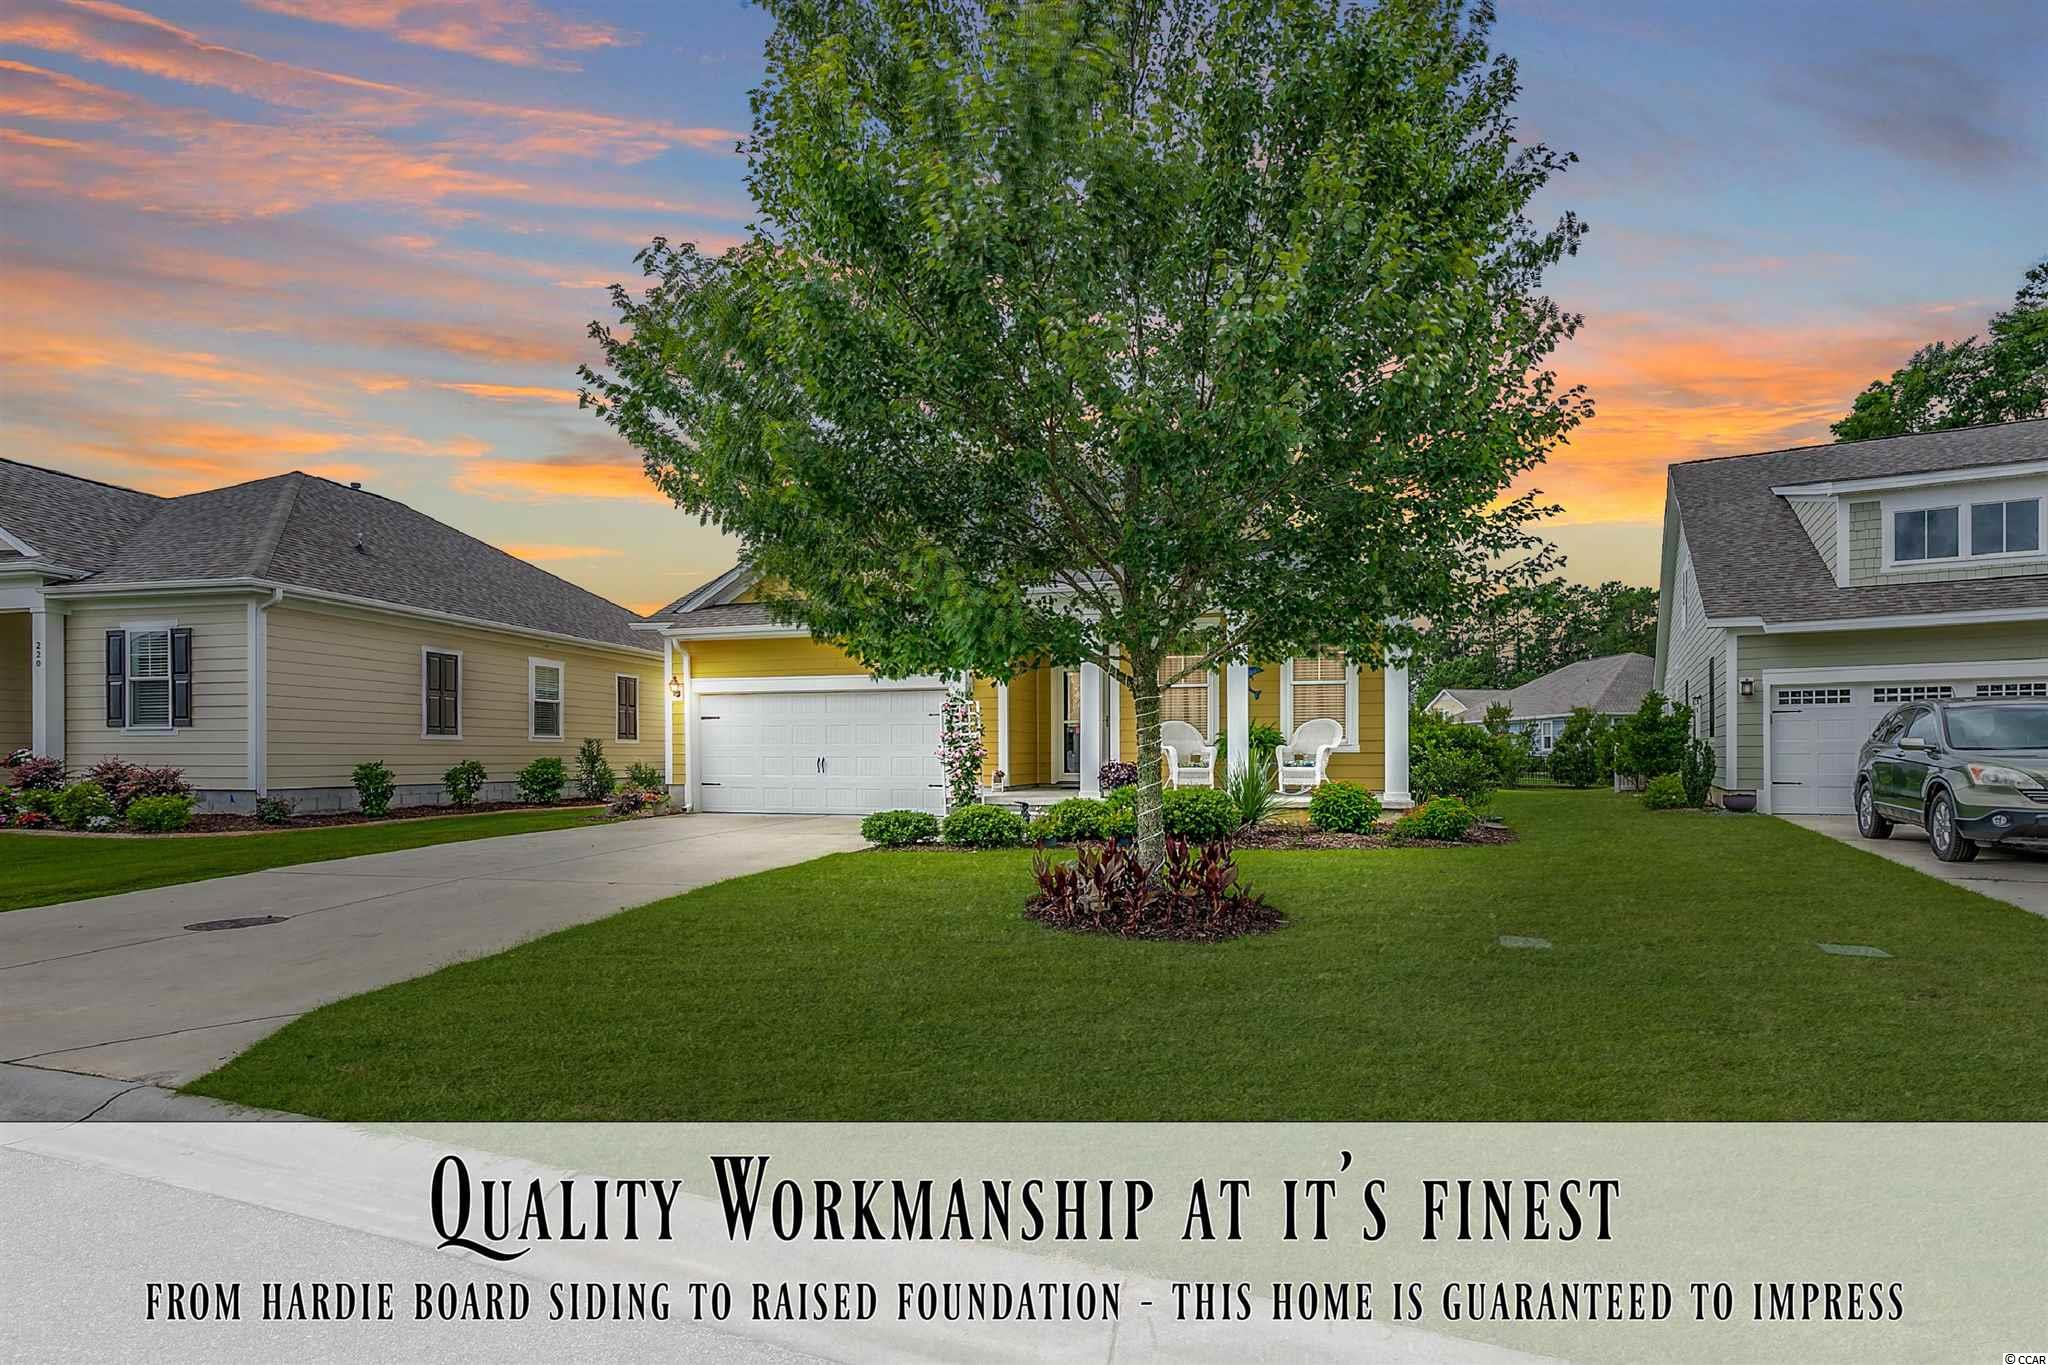 """Extremelyhigh quality constructionby Port City Homes (One of the most sought after custombuilders in the area!)! Homes like this do not come up for sale often in this market. From Hardie board siding & raised foundation on the exterior to wood flooring & natural gas fireplaceon the interior; the list of top of the line features are guaranteedto impress! Welcome to one of the most desired communities in Prince Creek! Champions Villagesits along #18 of the only TPC golf course in the state of South Carolina. There areonly 2 planned communities built on the course itself, and Champions Village is one of them. Enjoy the many perks of living a short walking distance to the course & clubhouse. There are a wide array of weekly activities to keep you busy. From happy hour to large events, this active community will keep you cheerful on a daily basis. 216 Ponte Vedra - """"The Sawgrass"""" floor plan with a super bonusroom upstairs. Recognized asTHE floorplan to have in the community! This home simply checks all the boxes. 216 Ponte Vedra Drive features the perfect criteria! A spacious open layout, large screened in back porch, spacious covered front porch, fireplace, natural gas heat/water/cooking, and super bonus area upstairs for your guest (upstairsfeatures a living/sitting room,bedroom, and full bath). This home is built with extreme quality! As soon as you take your first step inside you'll notice all the exquisite attention to detail. Top of the line products and quality workmanshipdescribesthis cozylow country home the best! **Please be sure to click on the virtual tour link provided for a full floor plan walk-throughusing Immoviewer® dollhouse technology.**"""